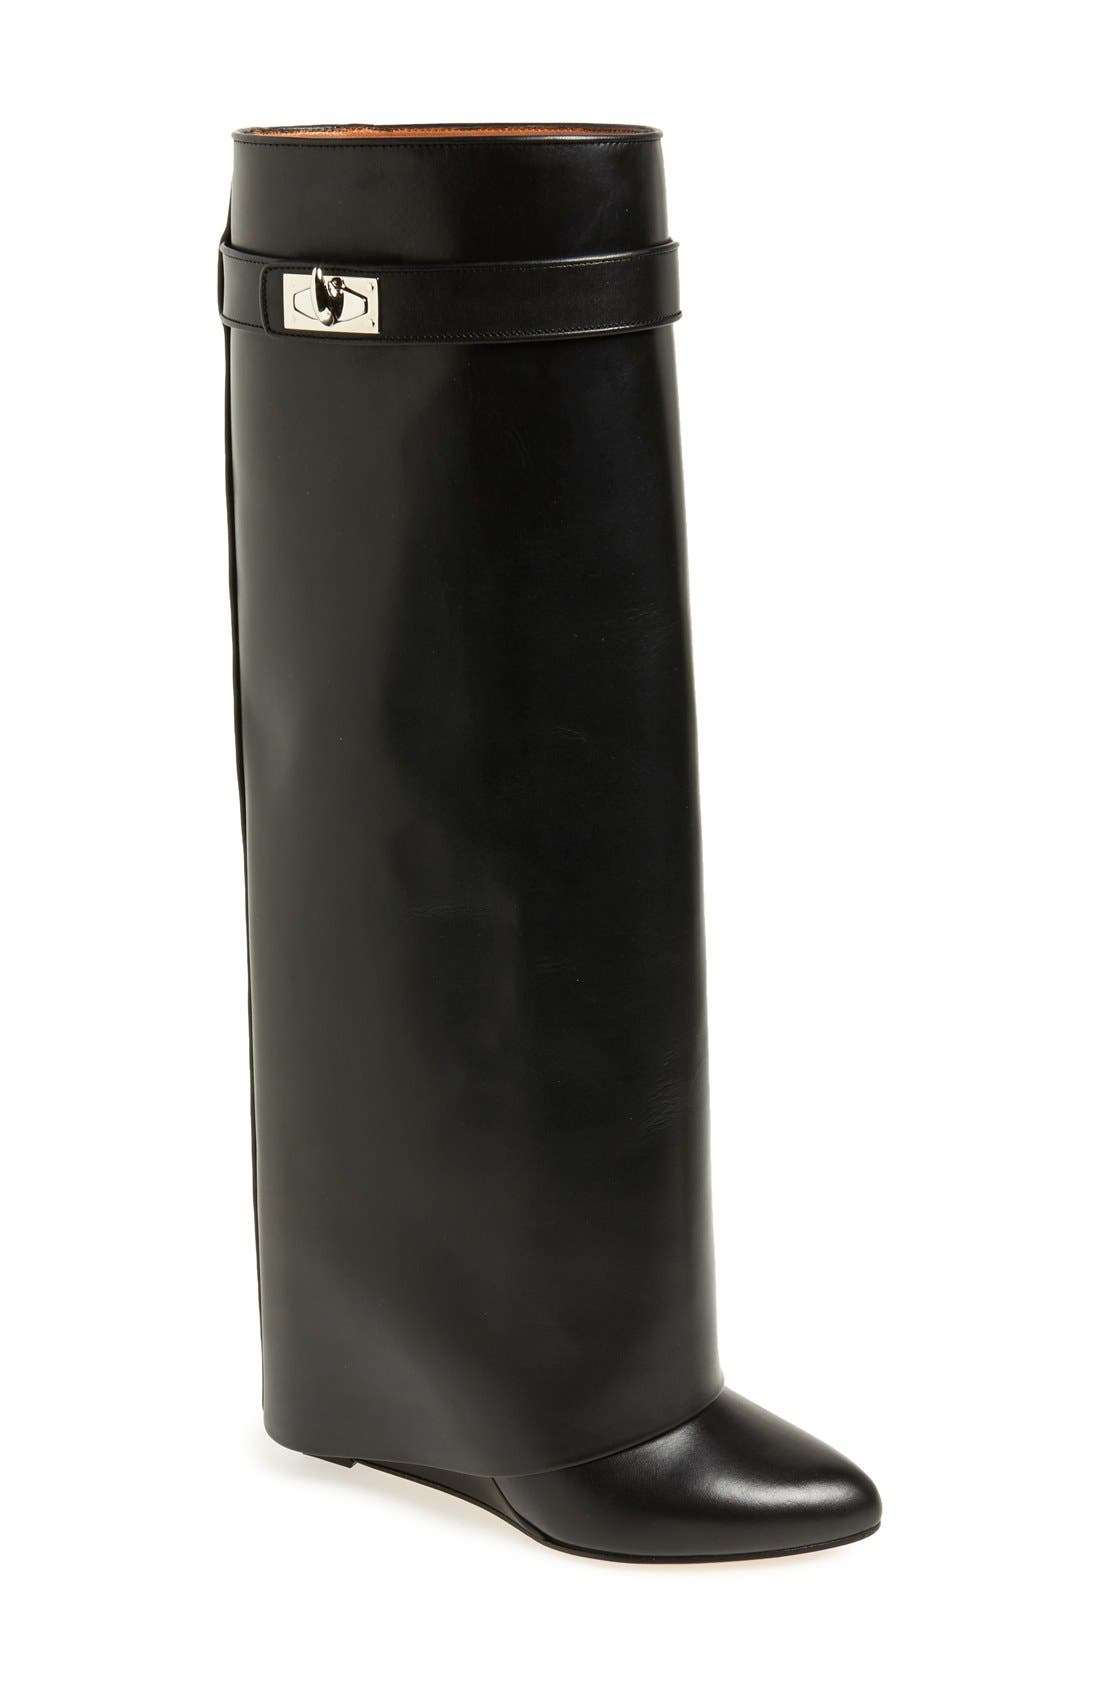 GIVENCHY Shark-Tooth Pant-Leg Knee Boot